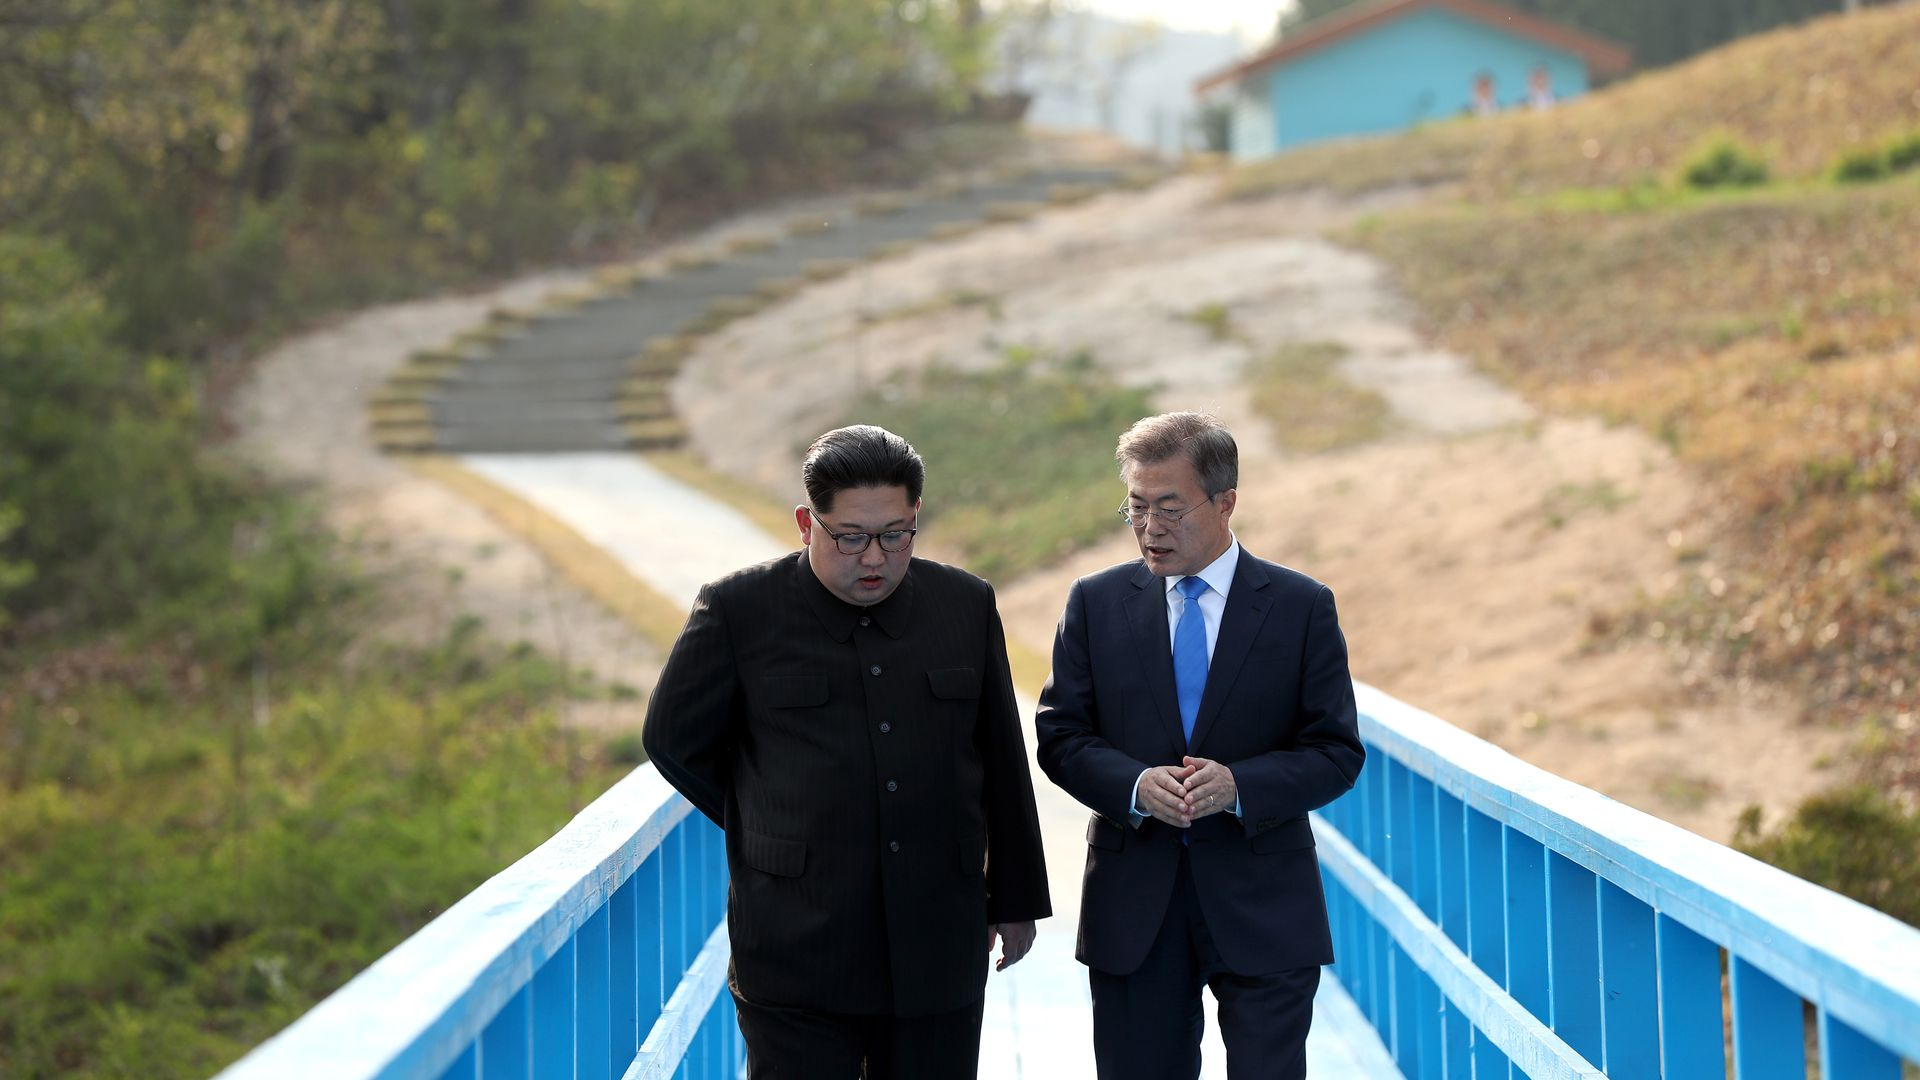 Kim Jong-un and Moon Jae-in walk down a blue bridge.